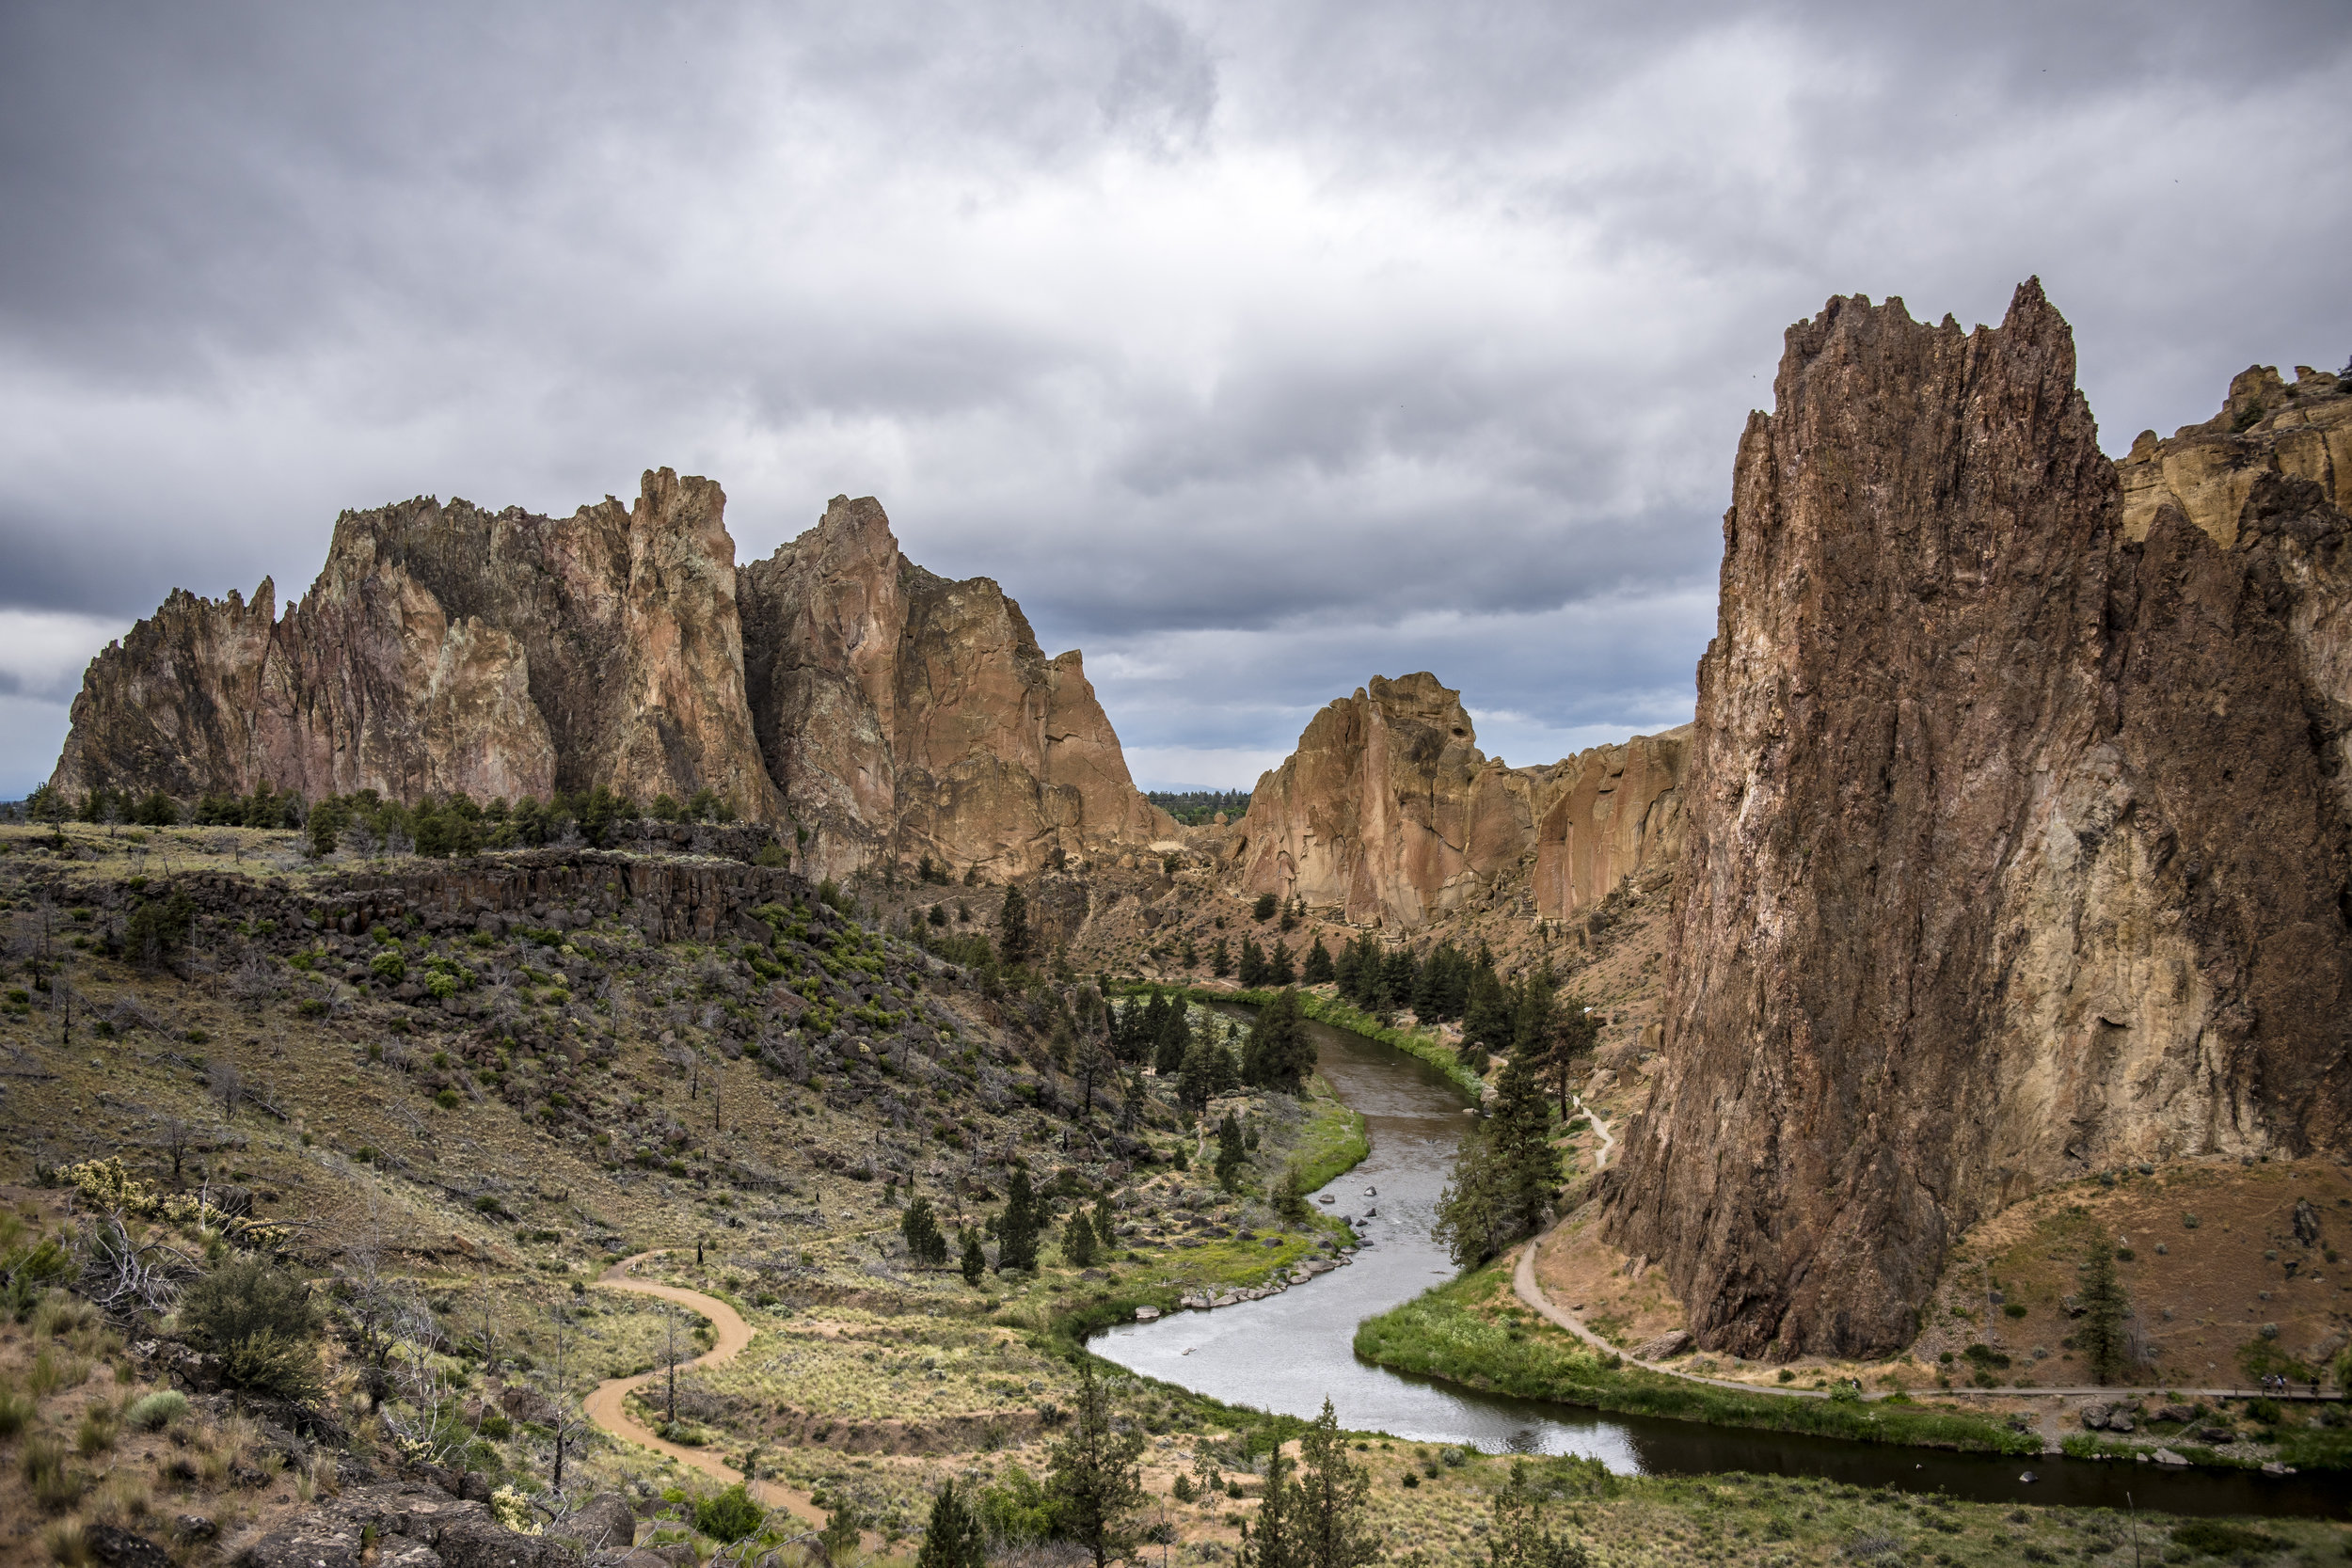 Dramtic sky over Smith Rock